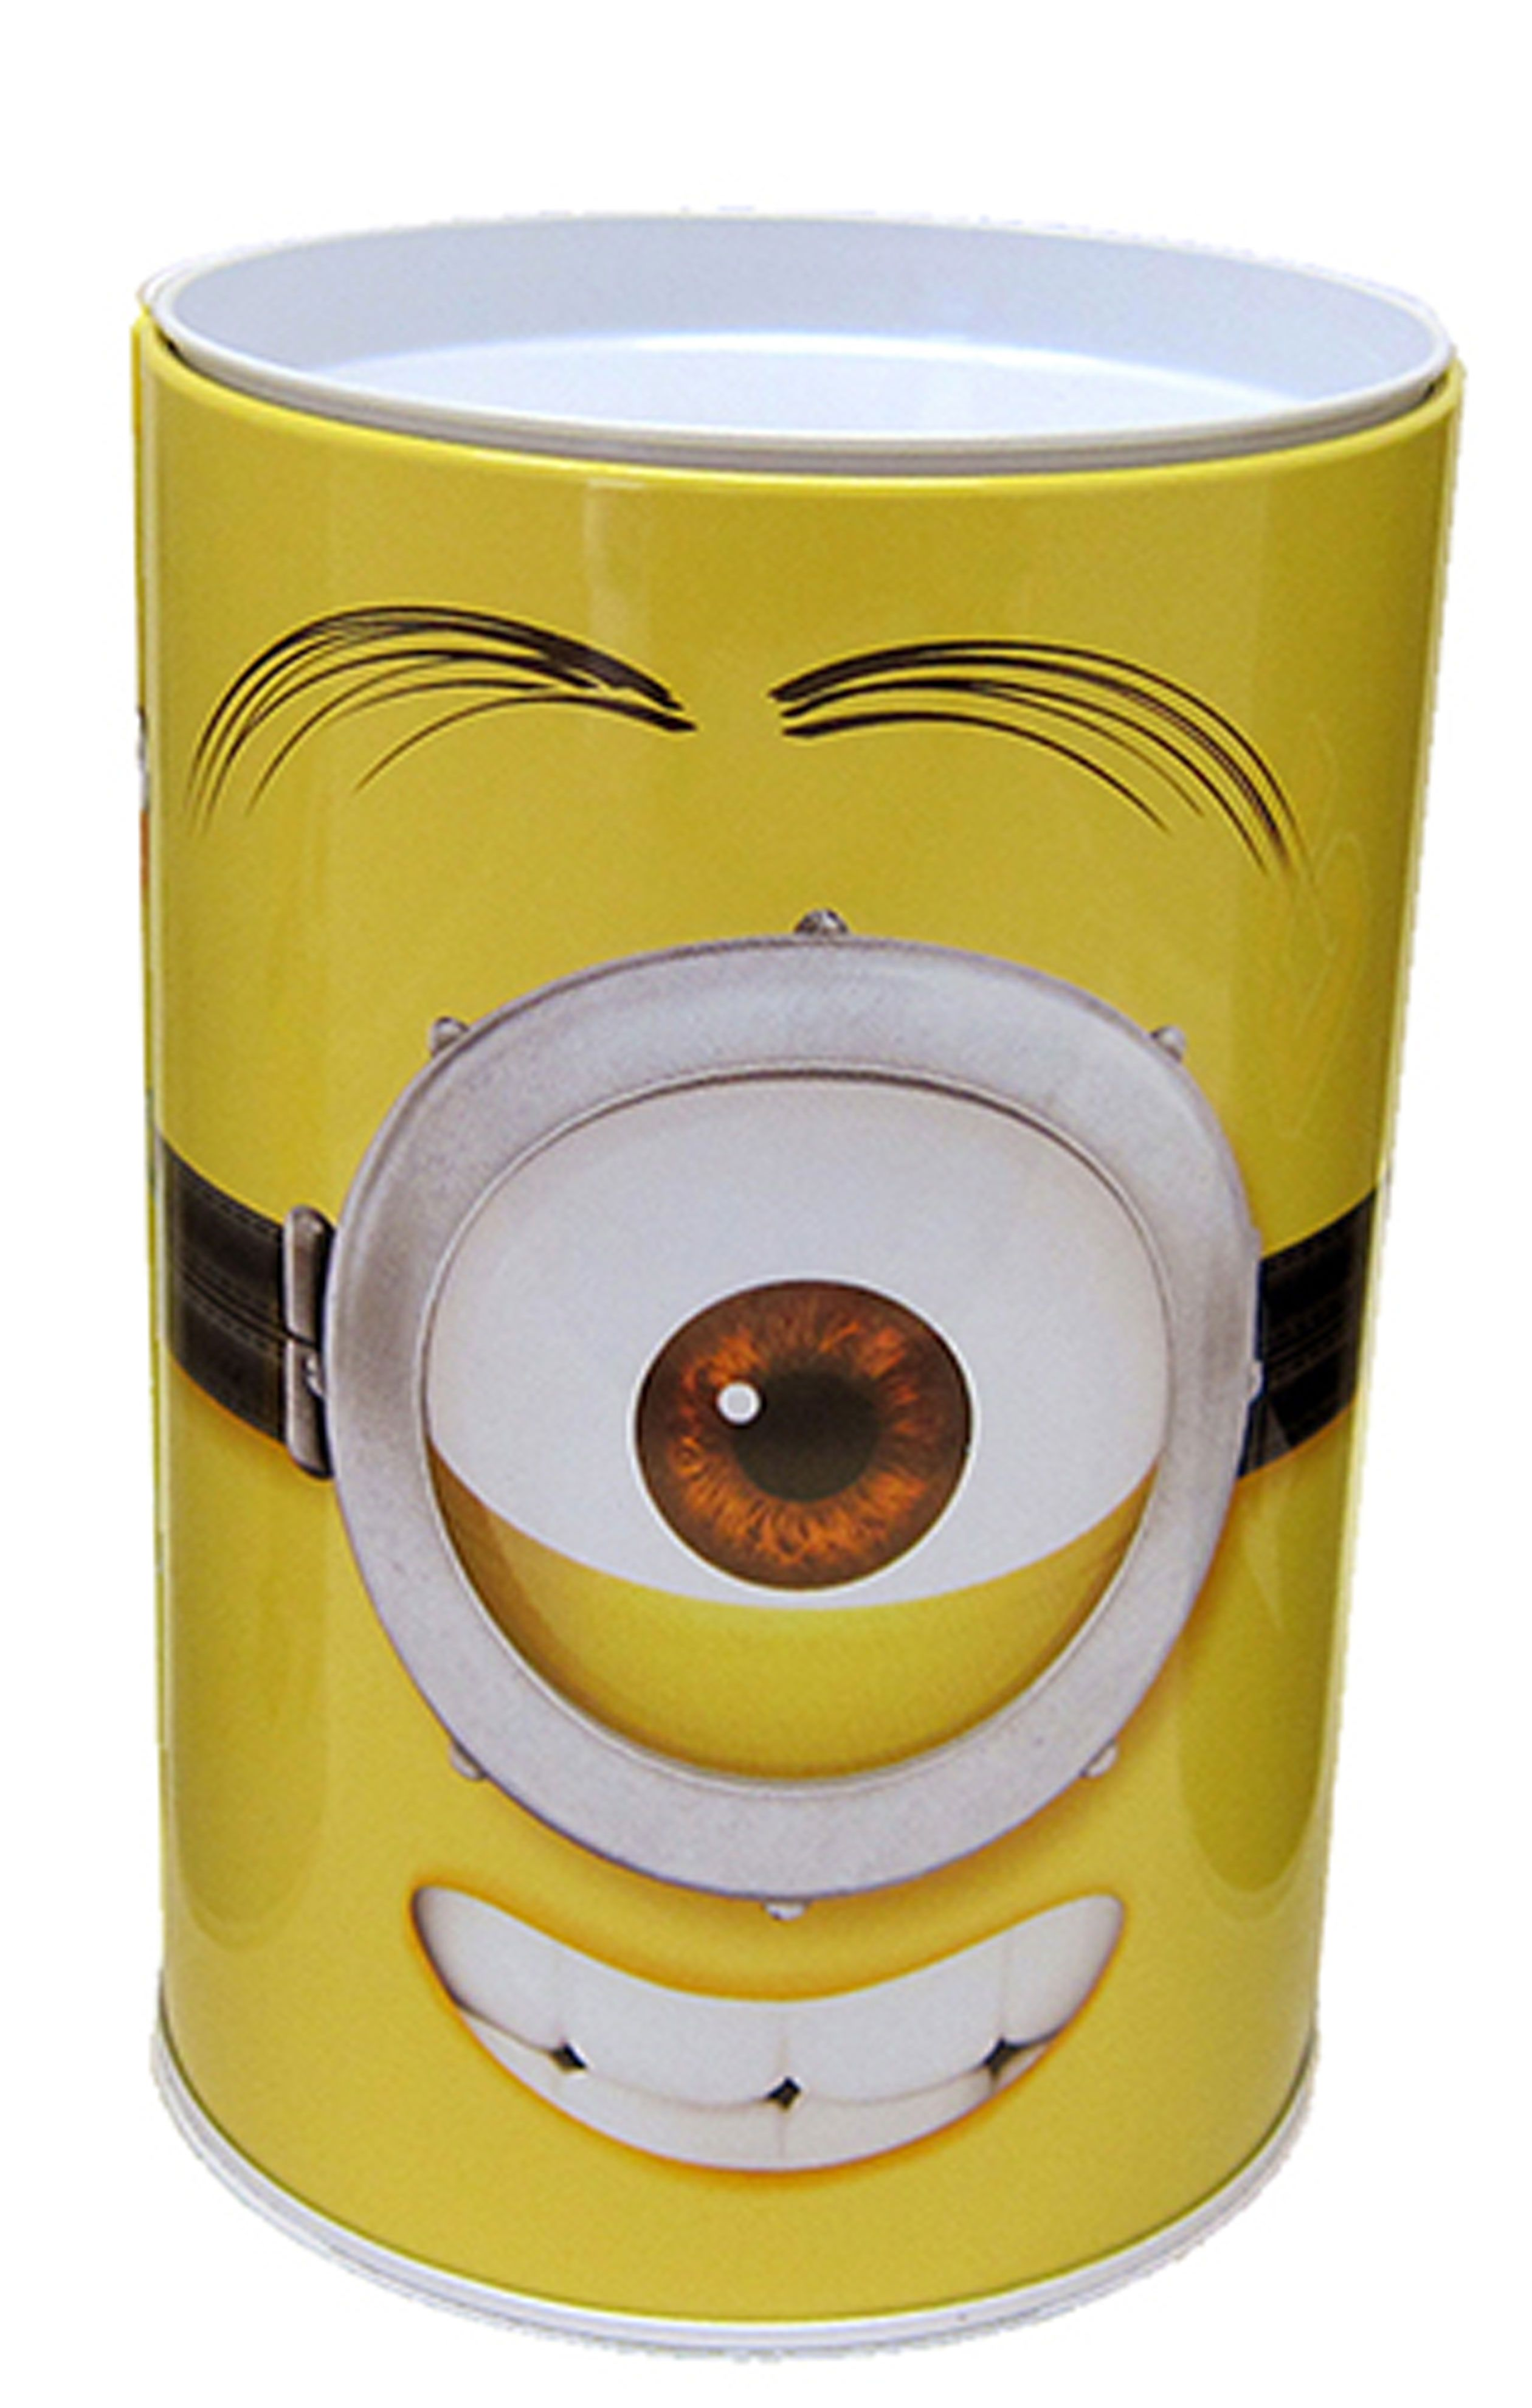 Kids can stash their allowance in this Minions coin bank